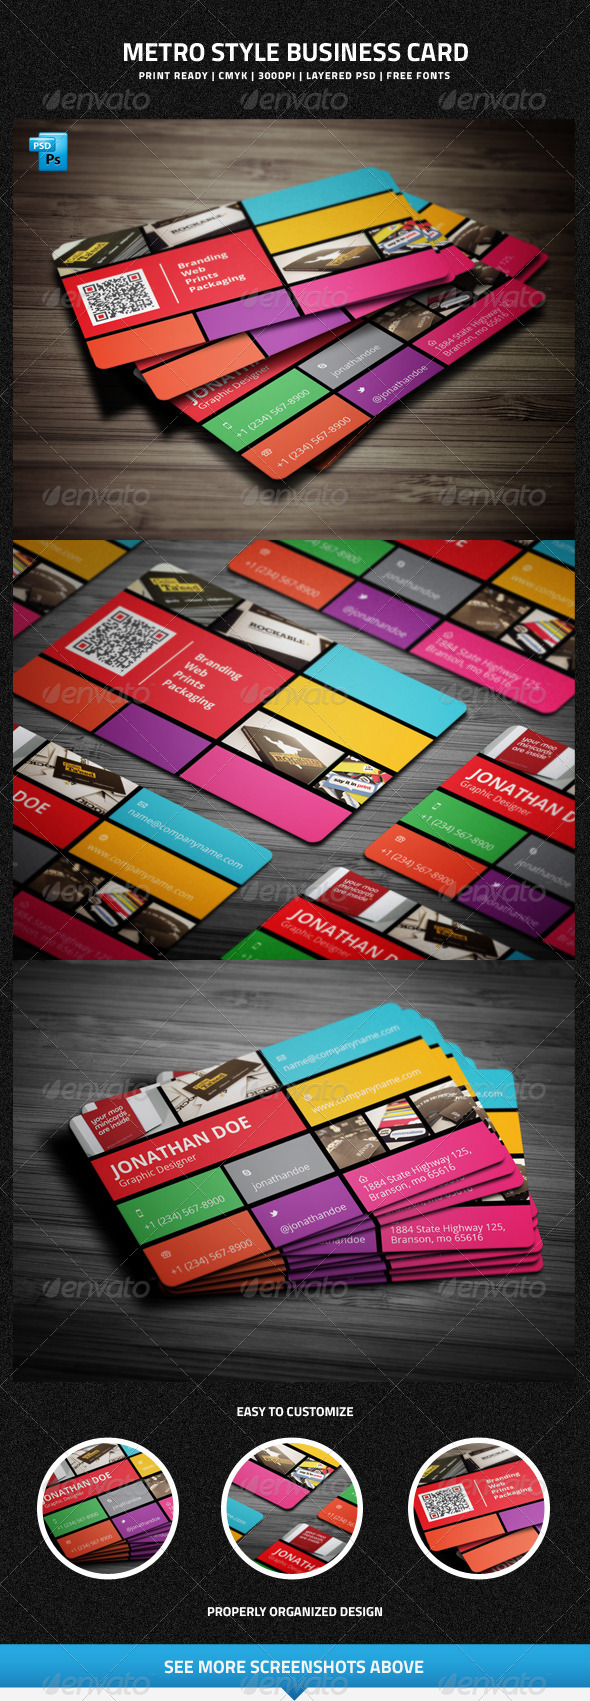 Metro Style Business Card - 16 - Creative Business Cards